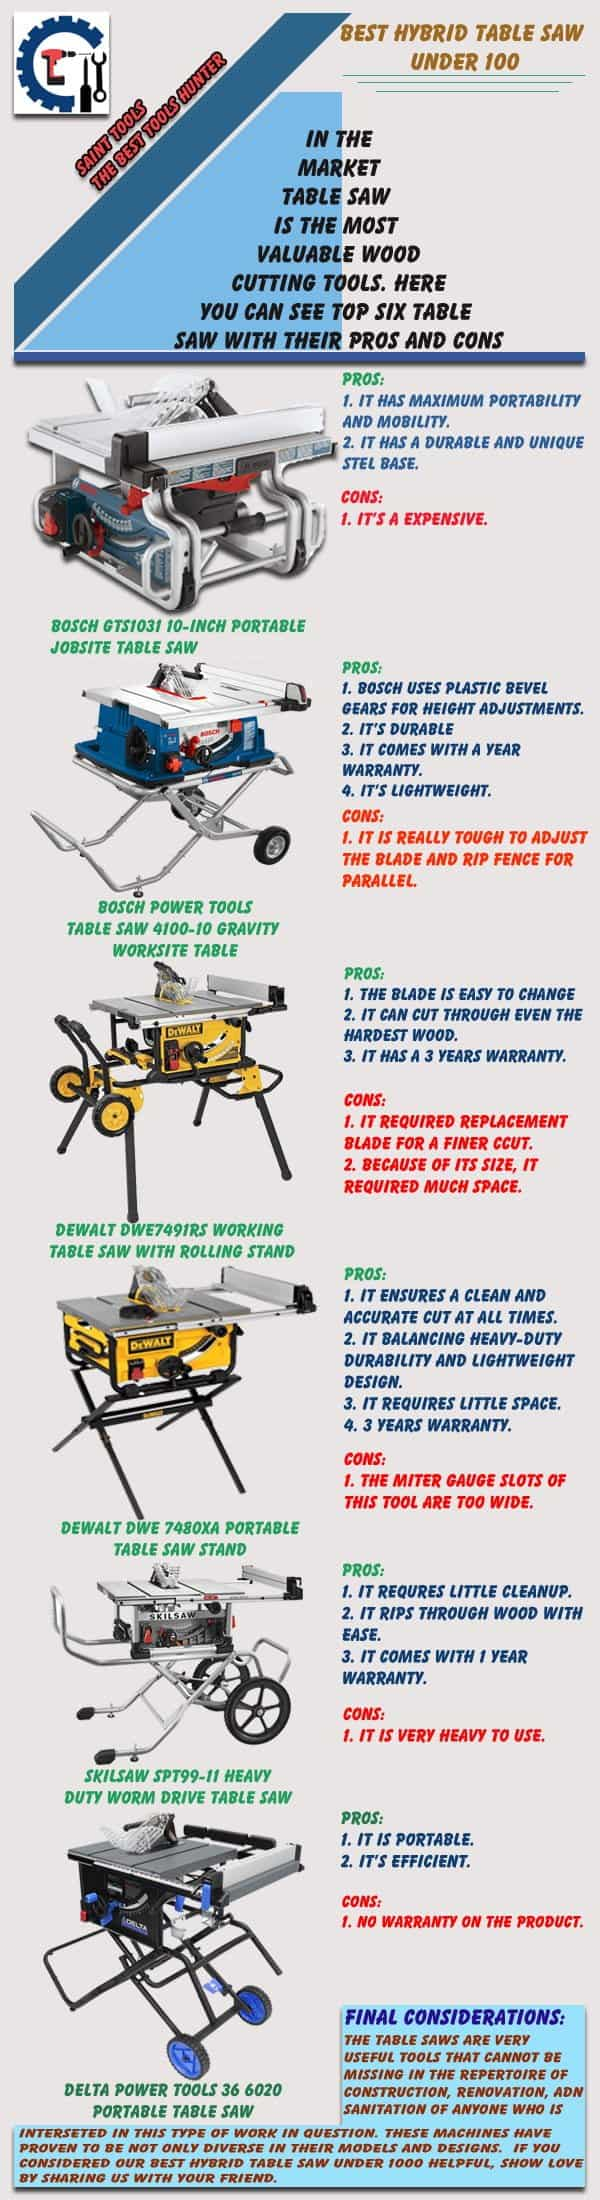 Info graphic- Best hybrid table saw under 1000